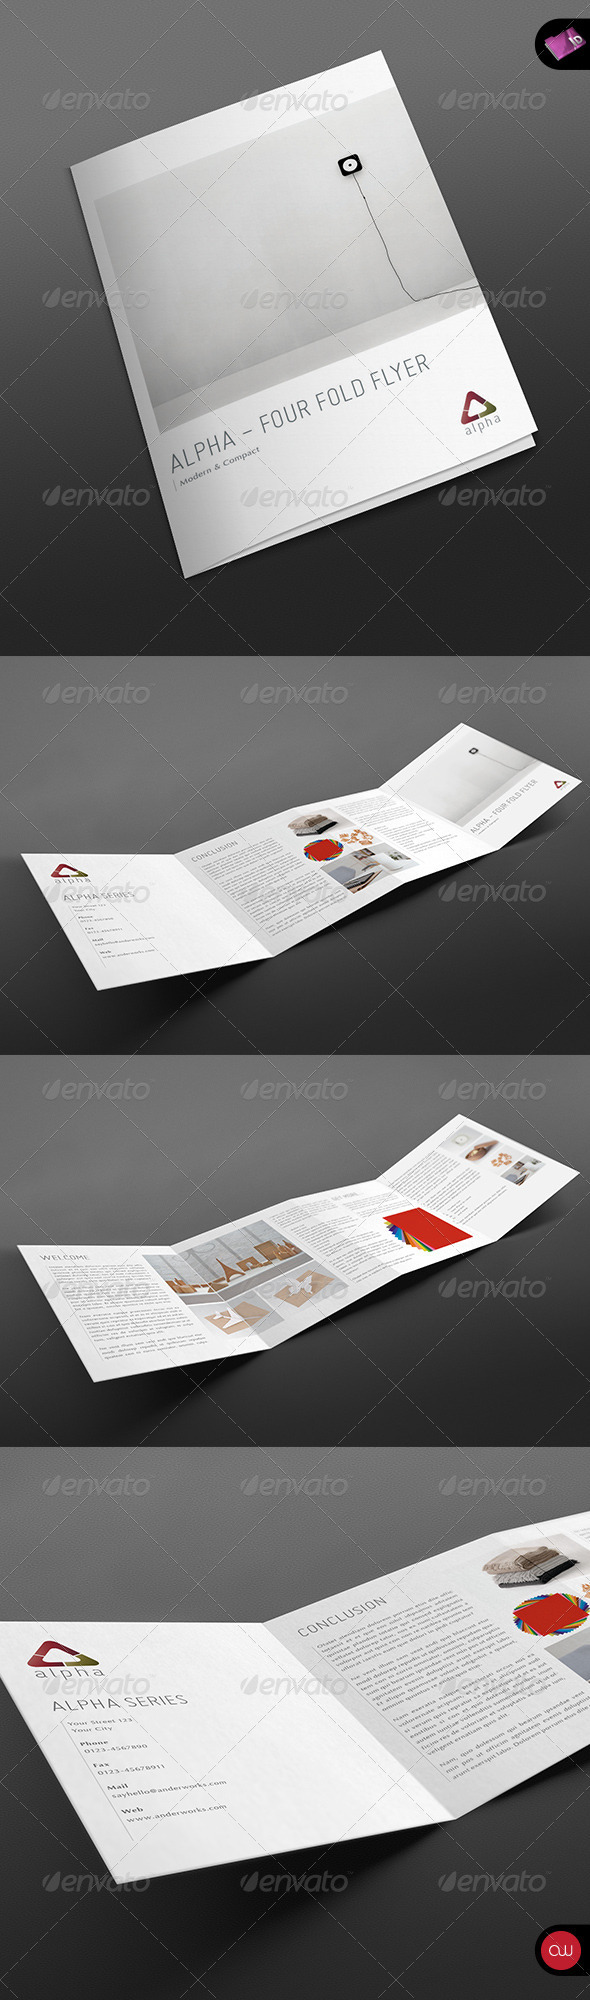 Book & Brochure - Alpha Series 4-fold - Corporate Flyers